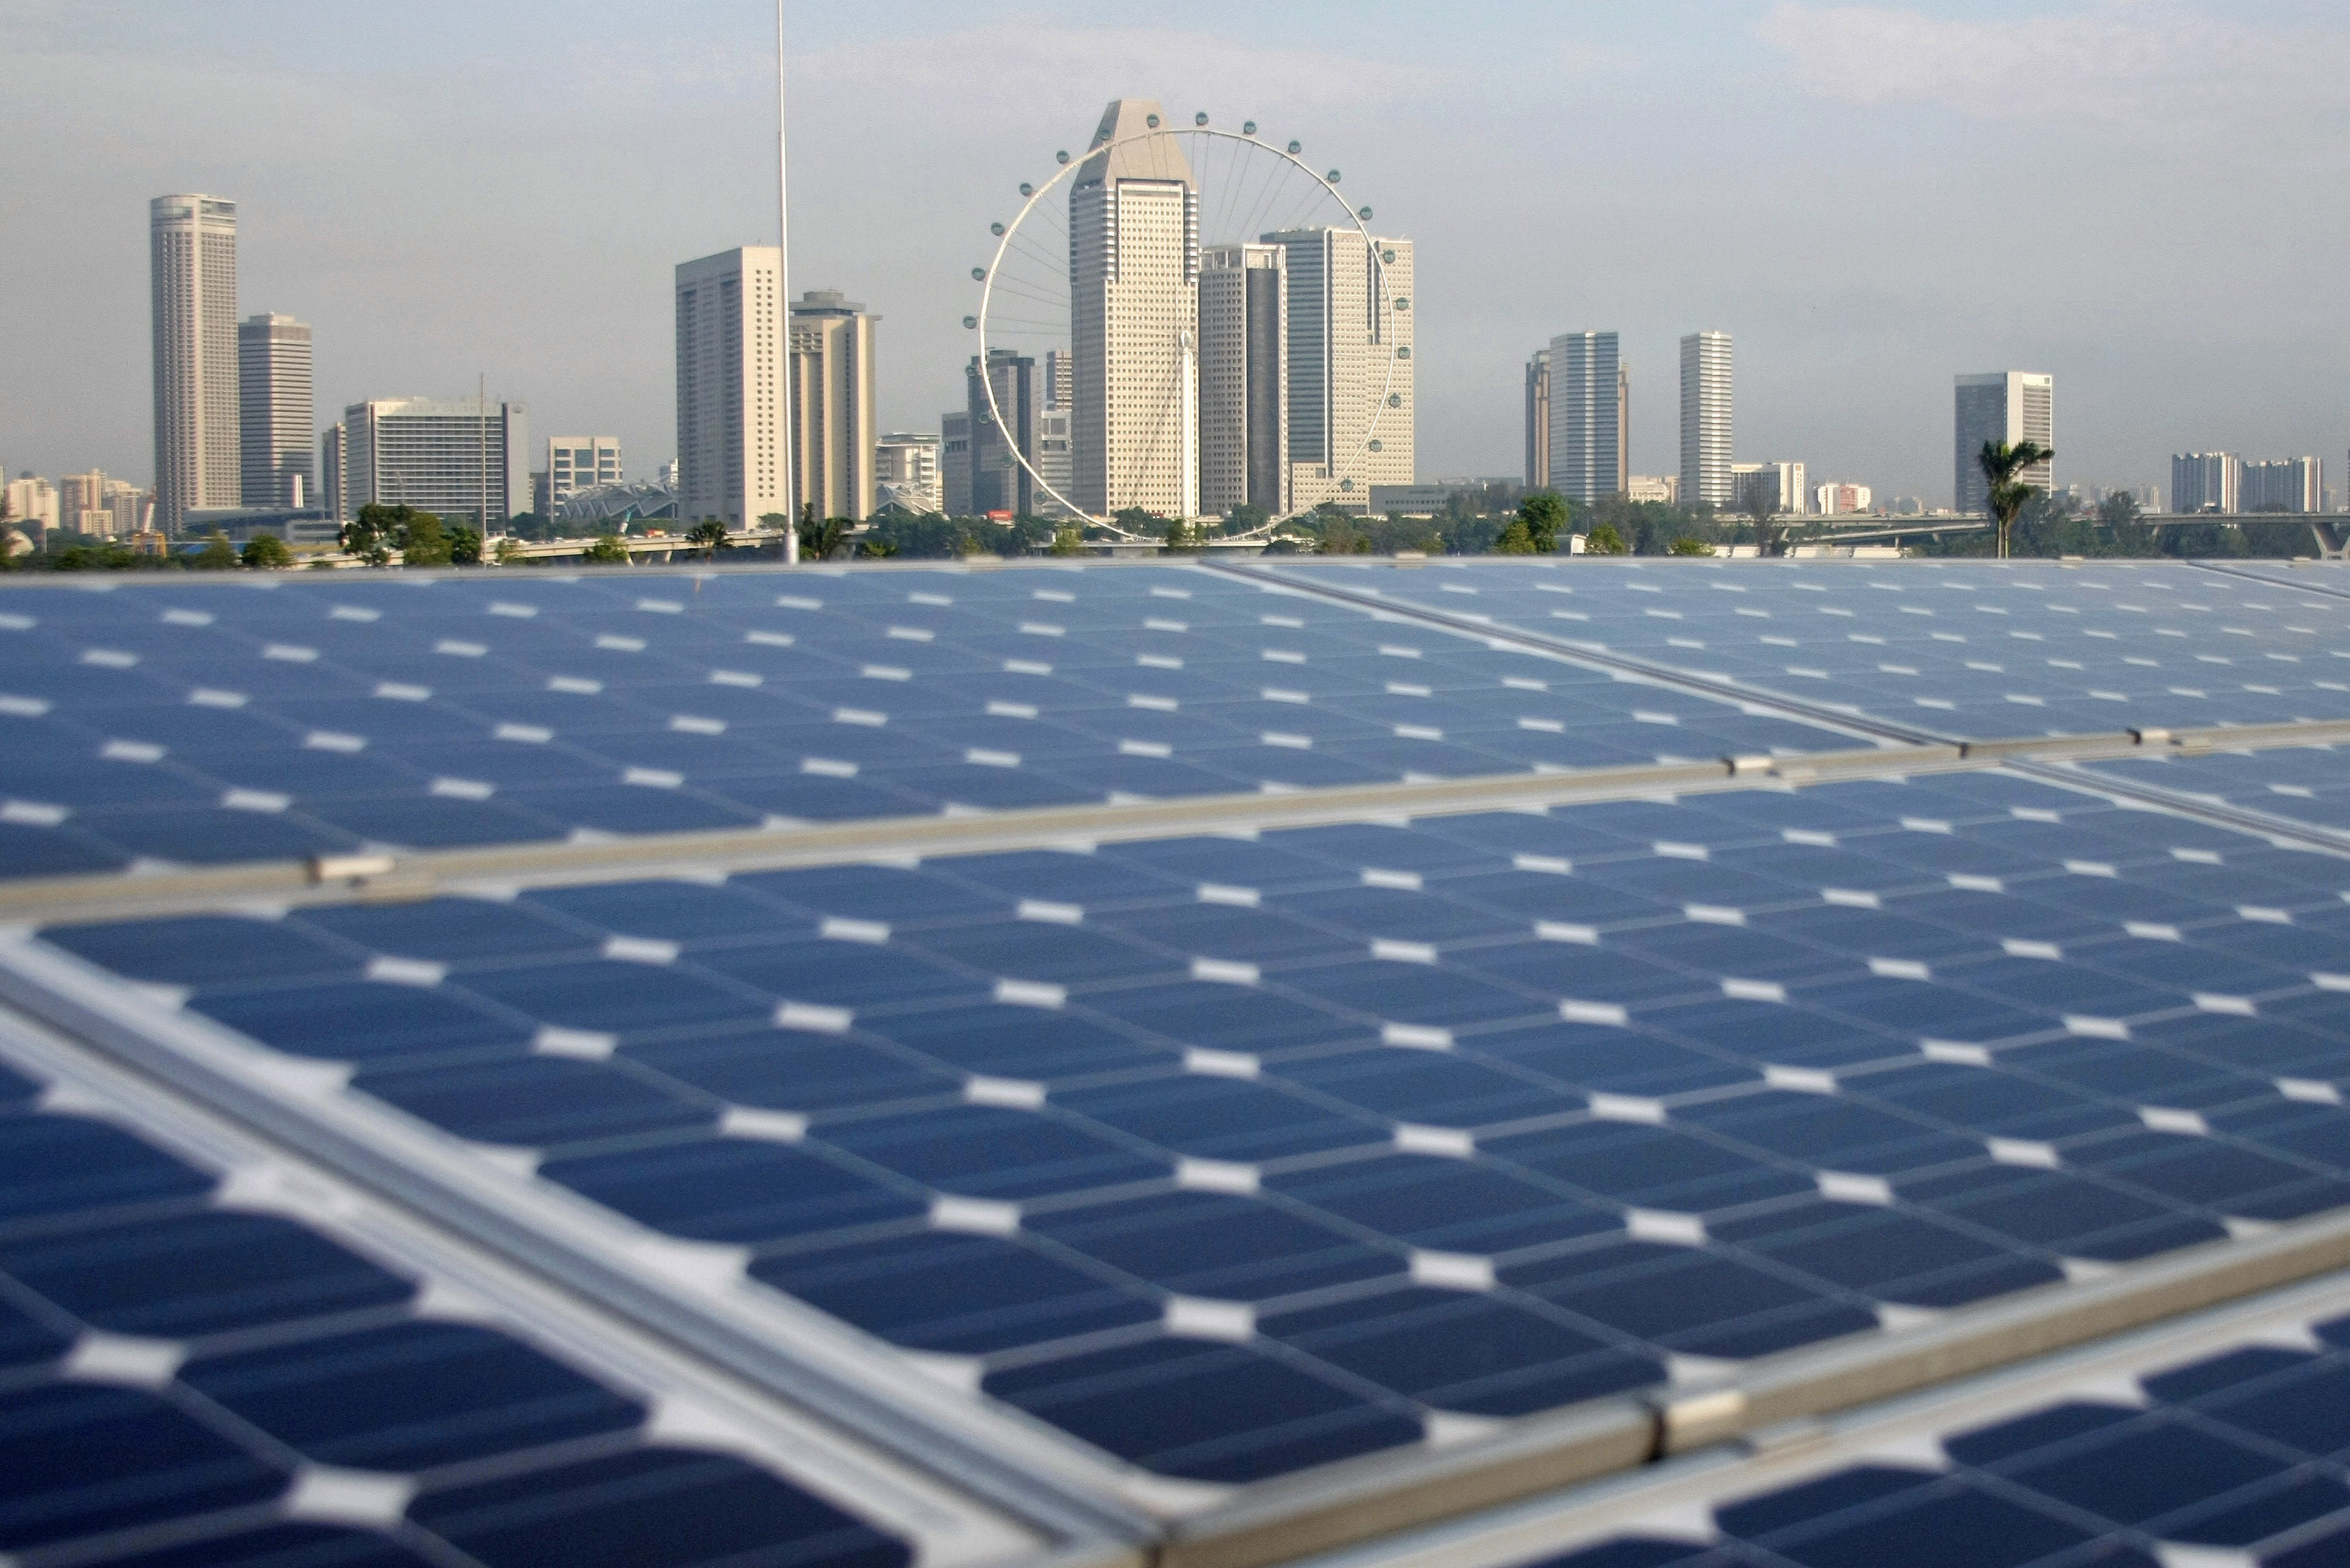 Solar panels are pictured on the Marina Barrage building, with the Singapore Flyer observation wheel and office and hotel buildings pictured in the background, in Singapore March 25, 2009.